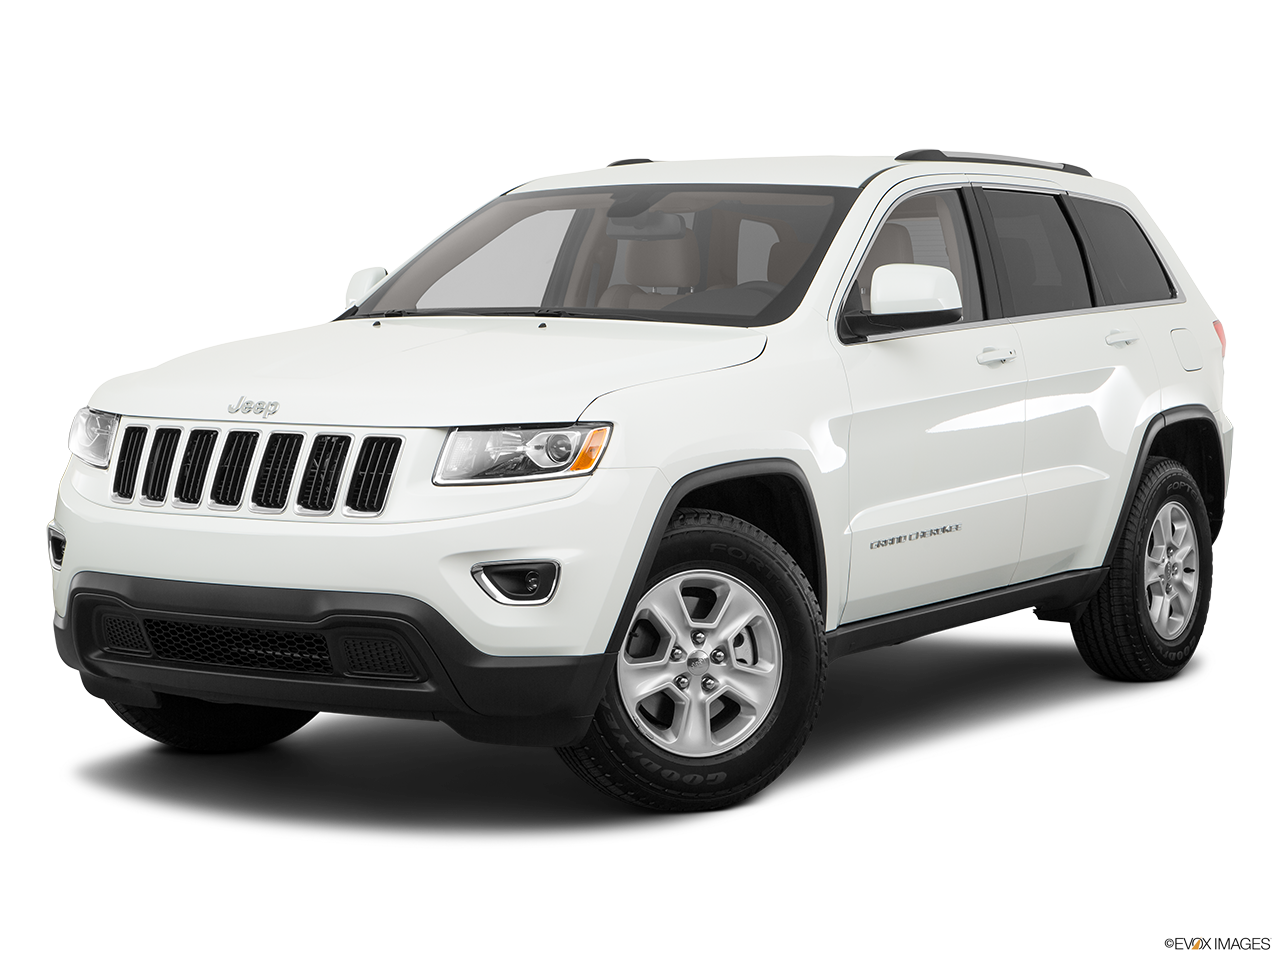 2016 jeep cherokee png. Grand dealer serving